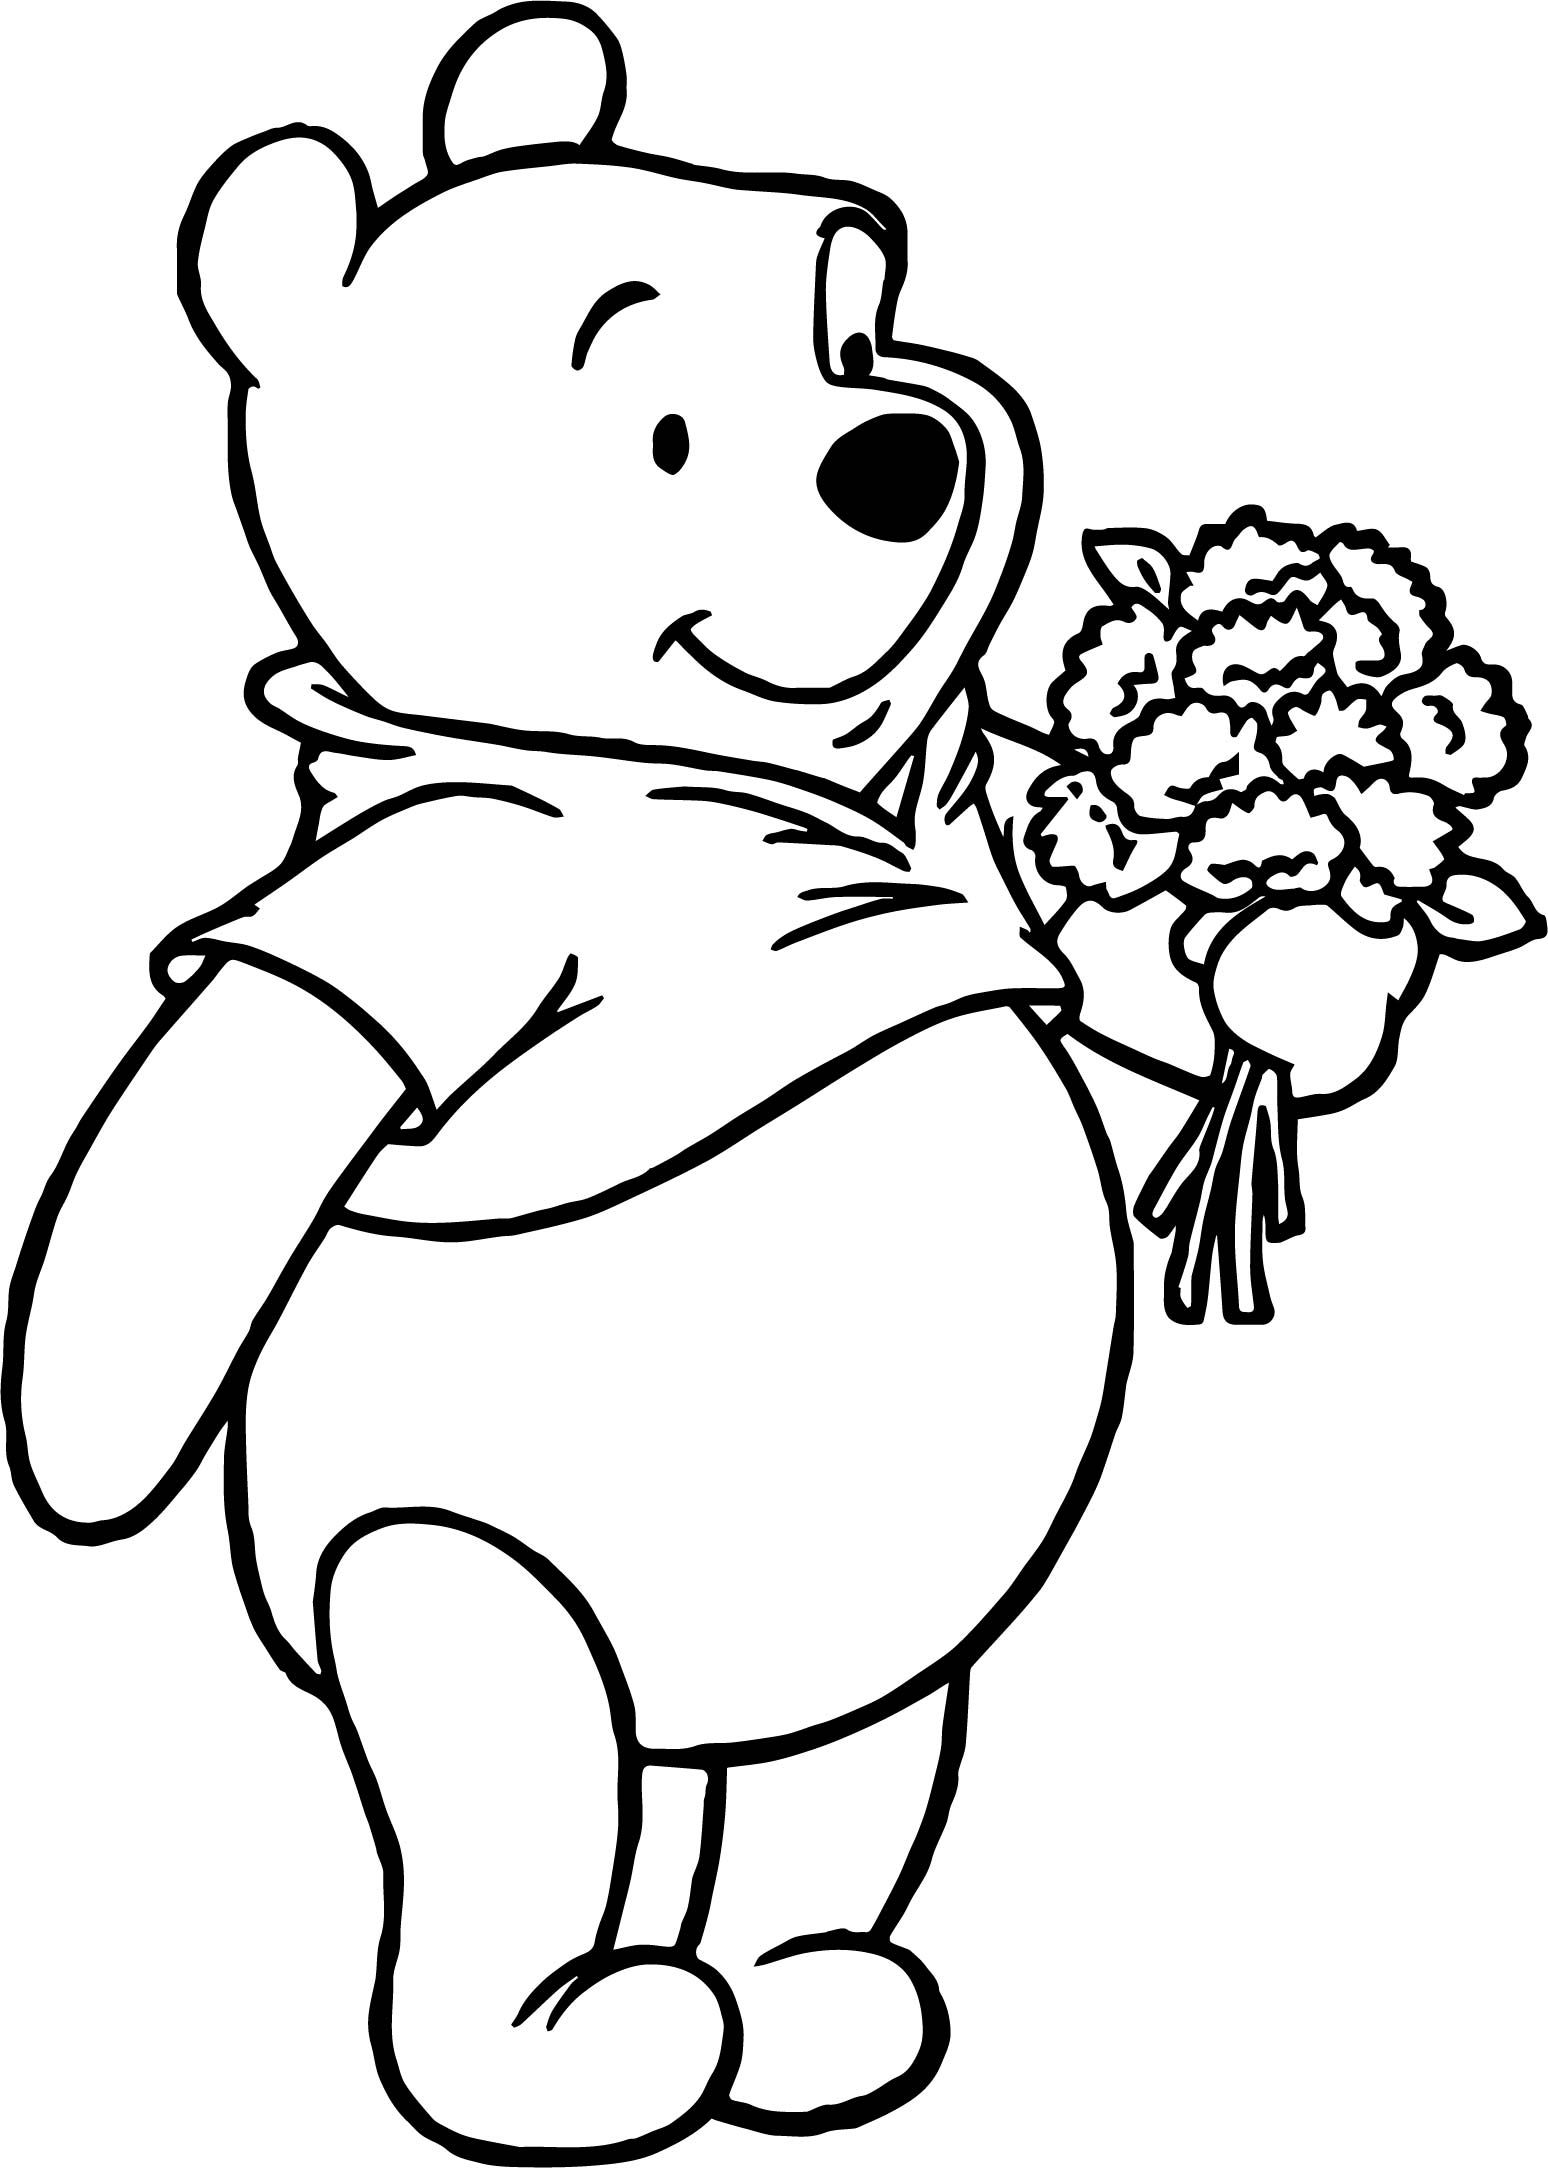 pooh bear coloring pages winnie the pooh coloring pages learn to coloring pooh bear pages coloring